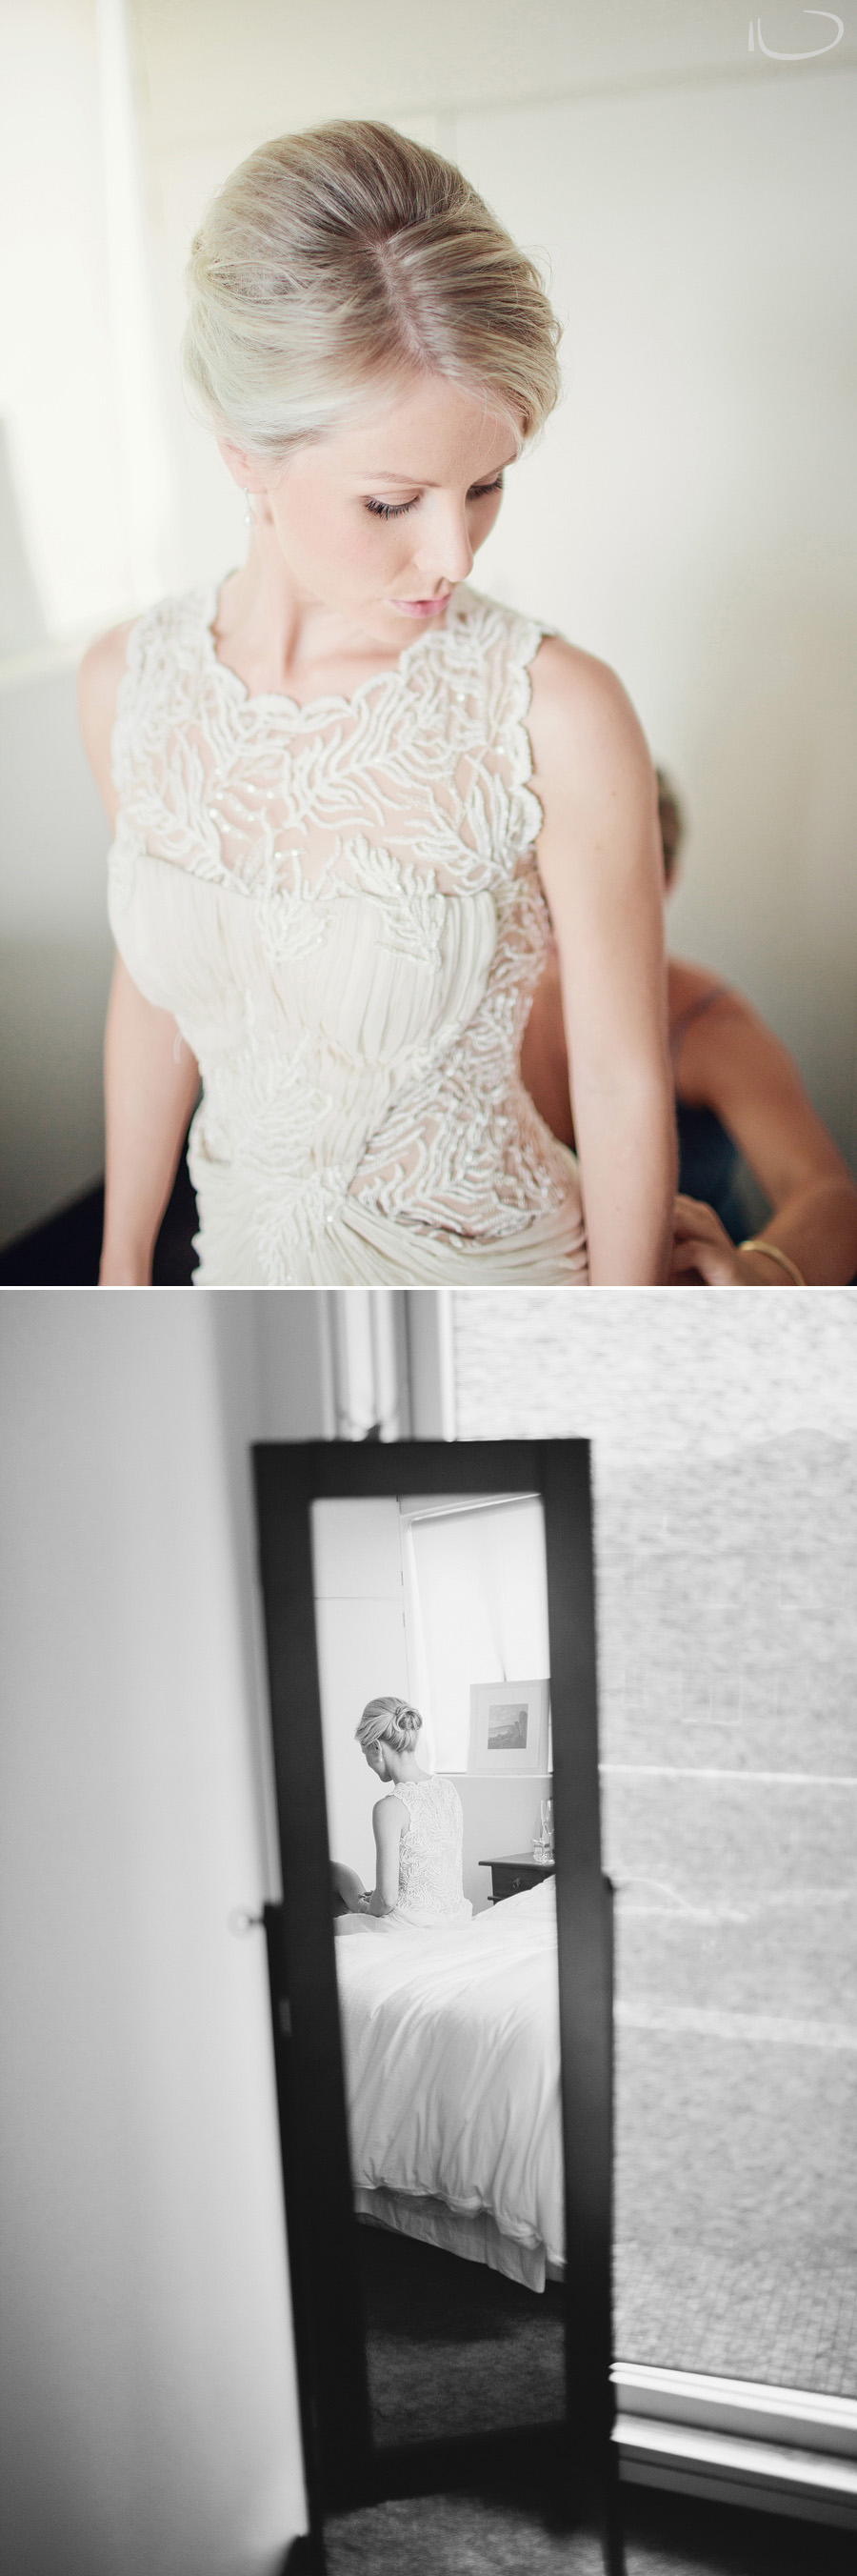 Sydney Wedding Photographers: Bride getting dressed